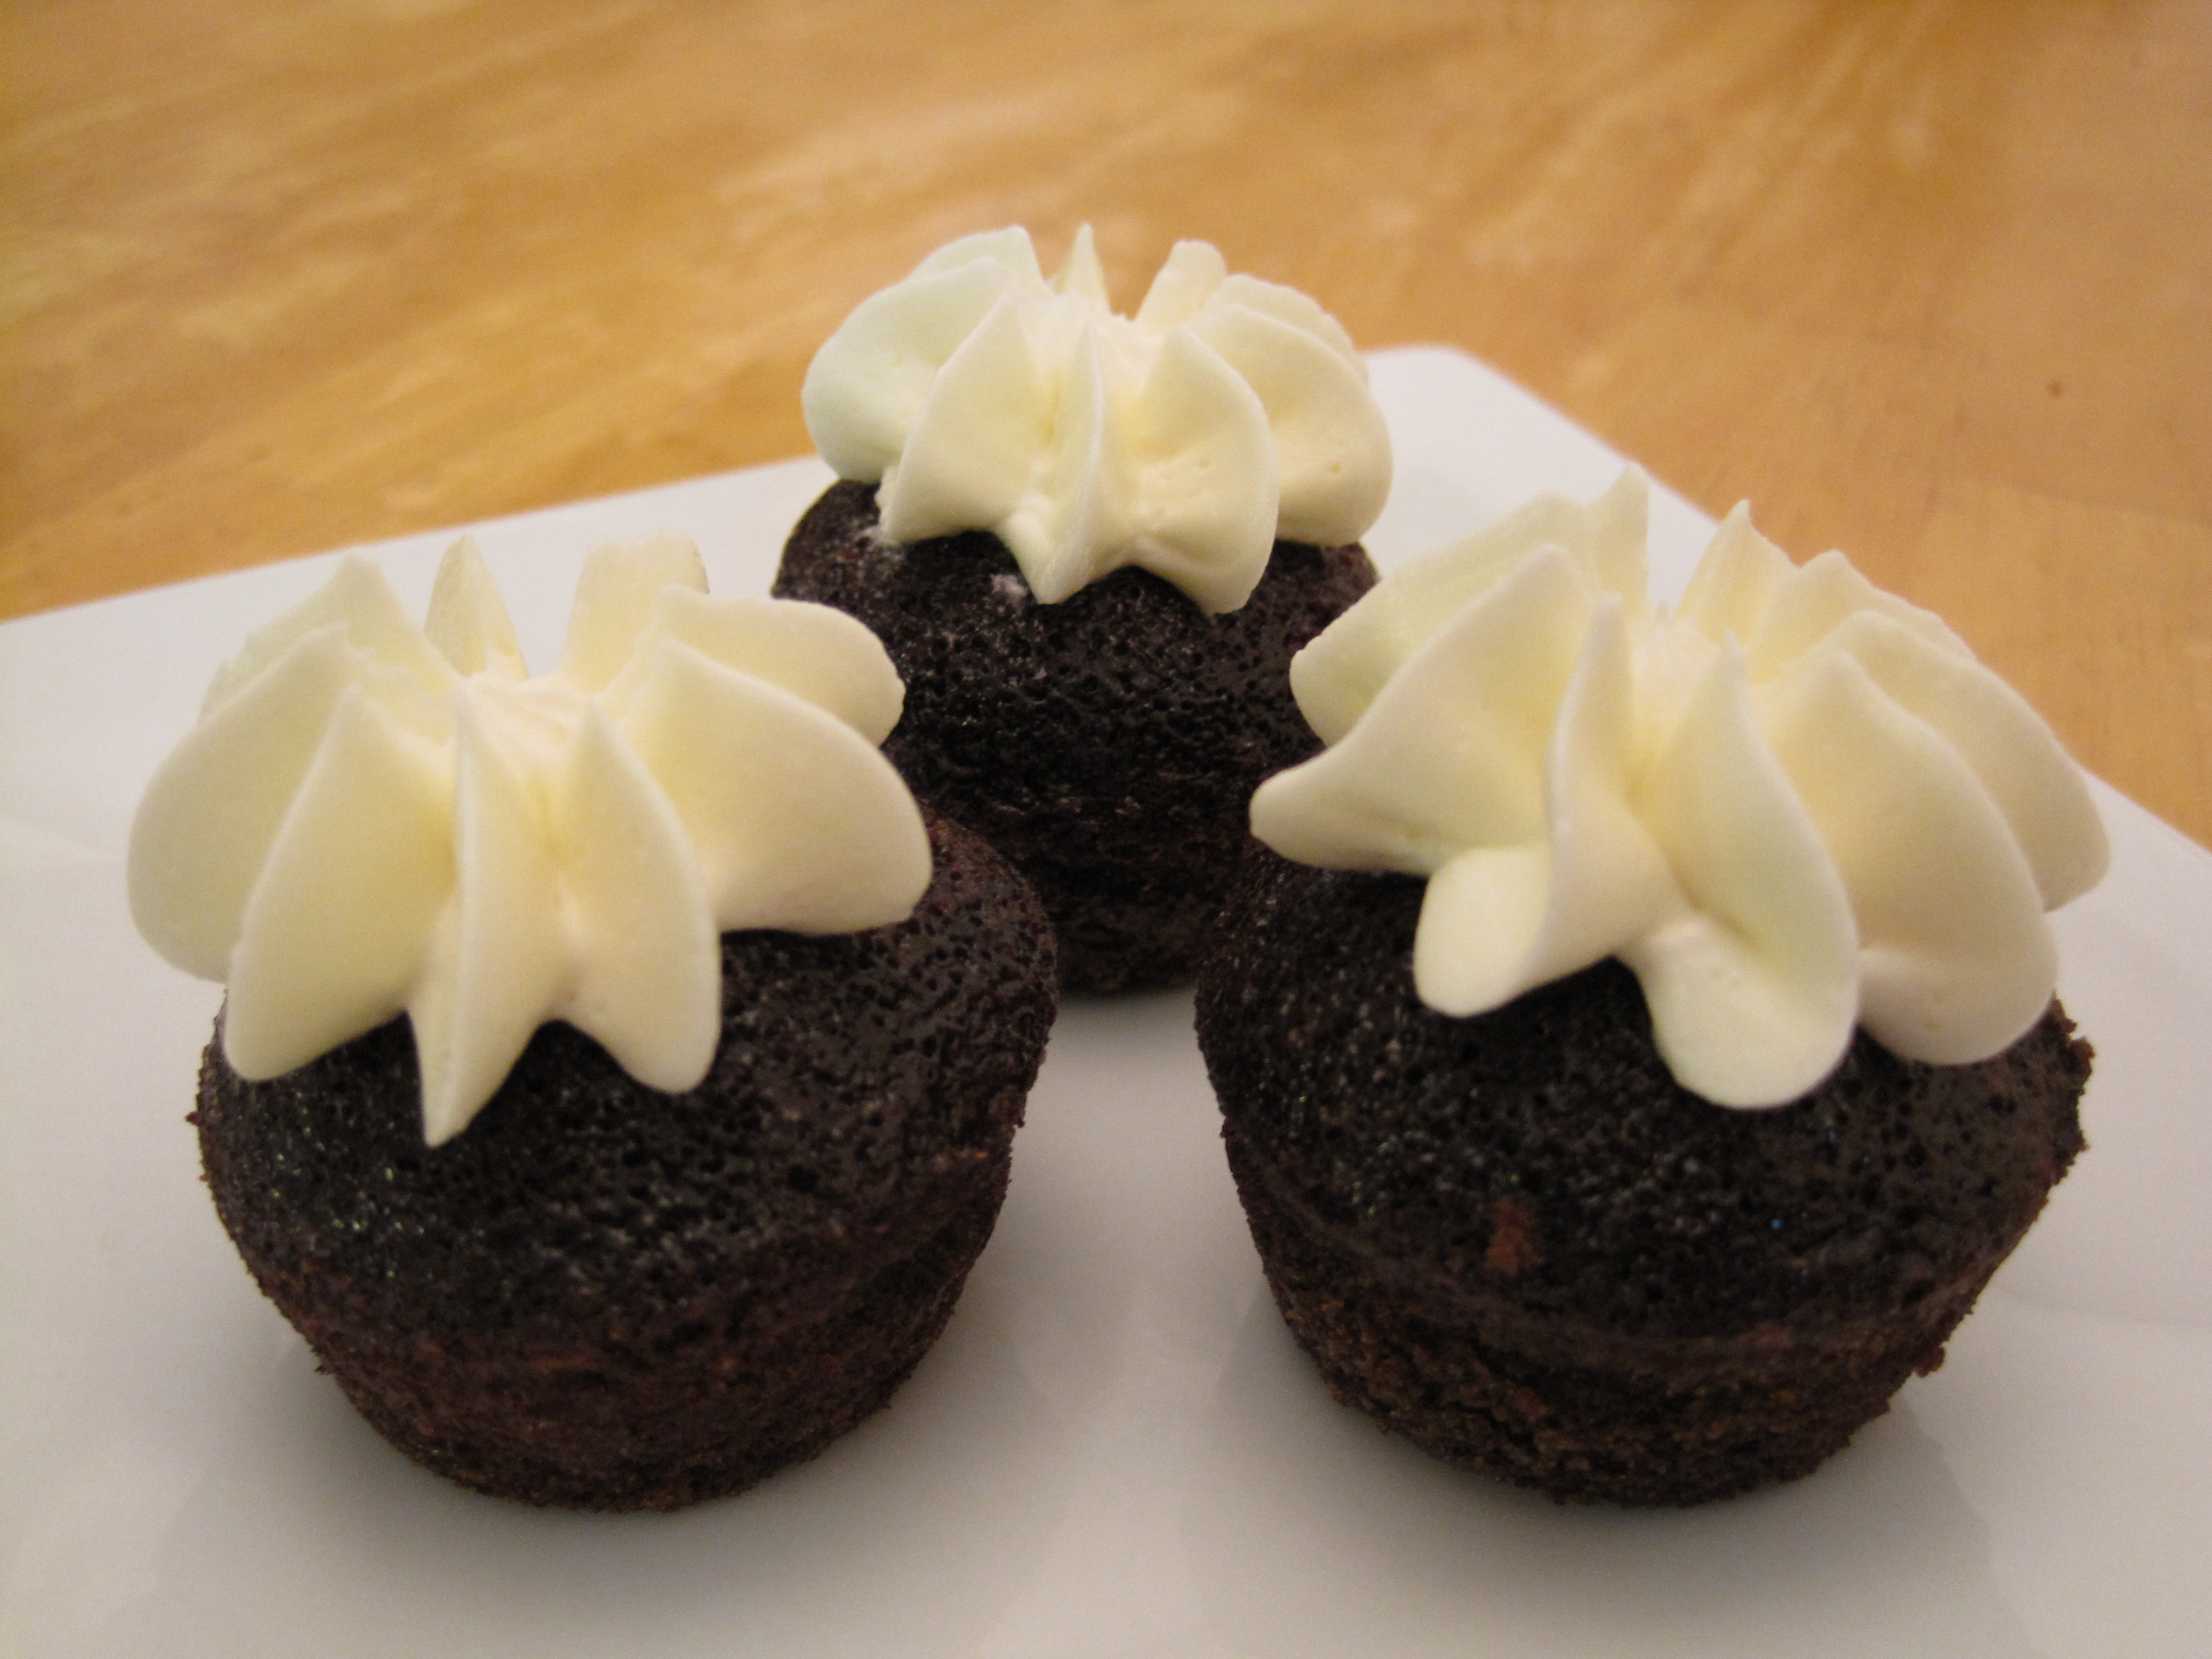 Favourite Moist Chocolate Cake or Cupcakes Recipe using buttermilk